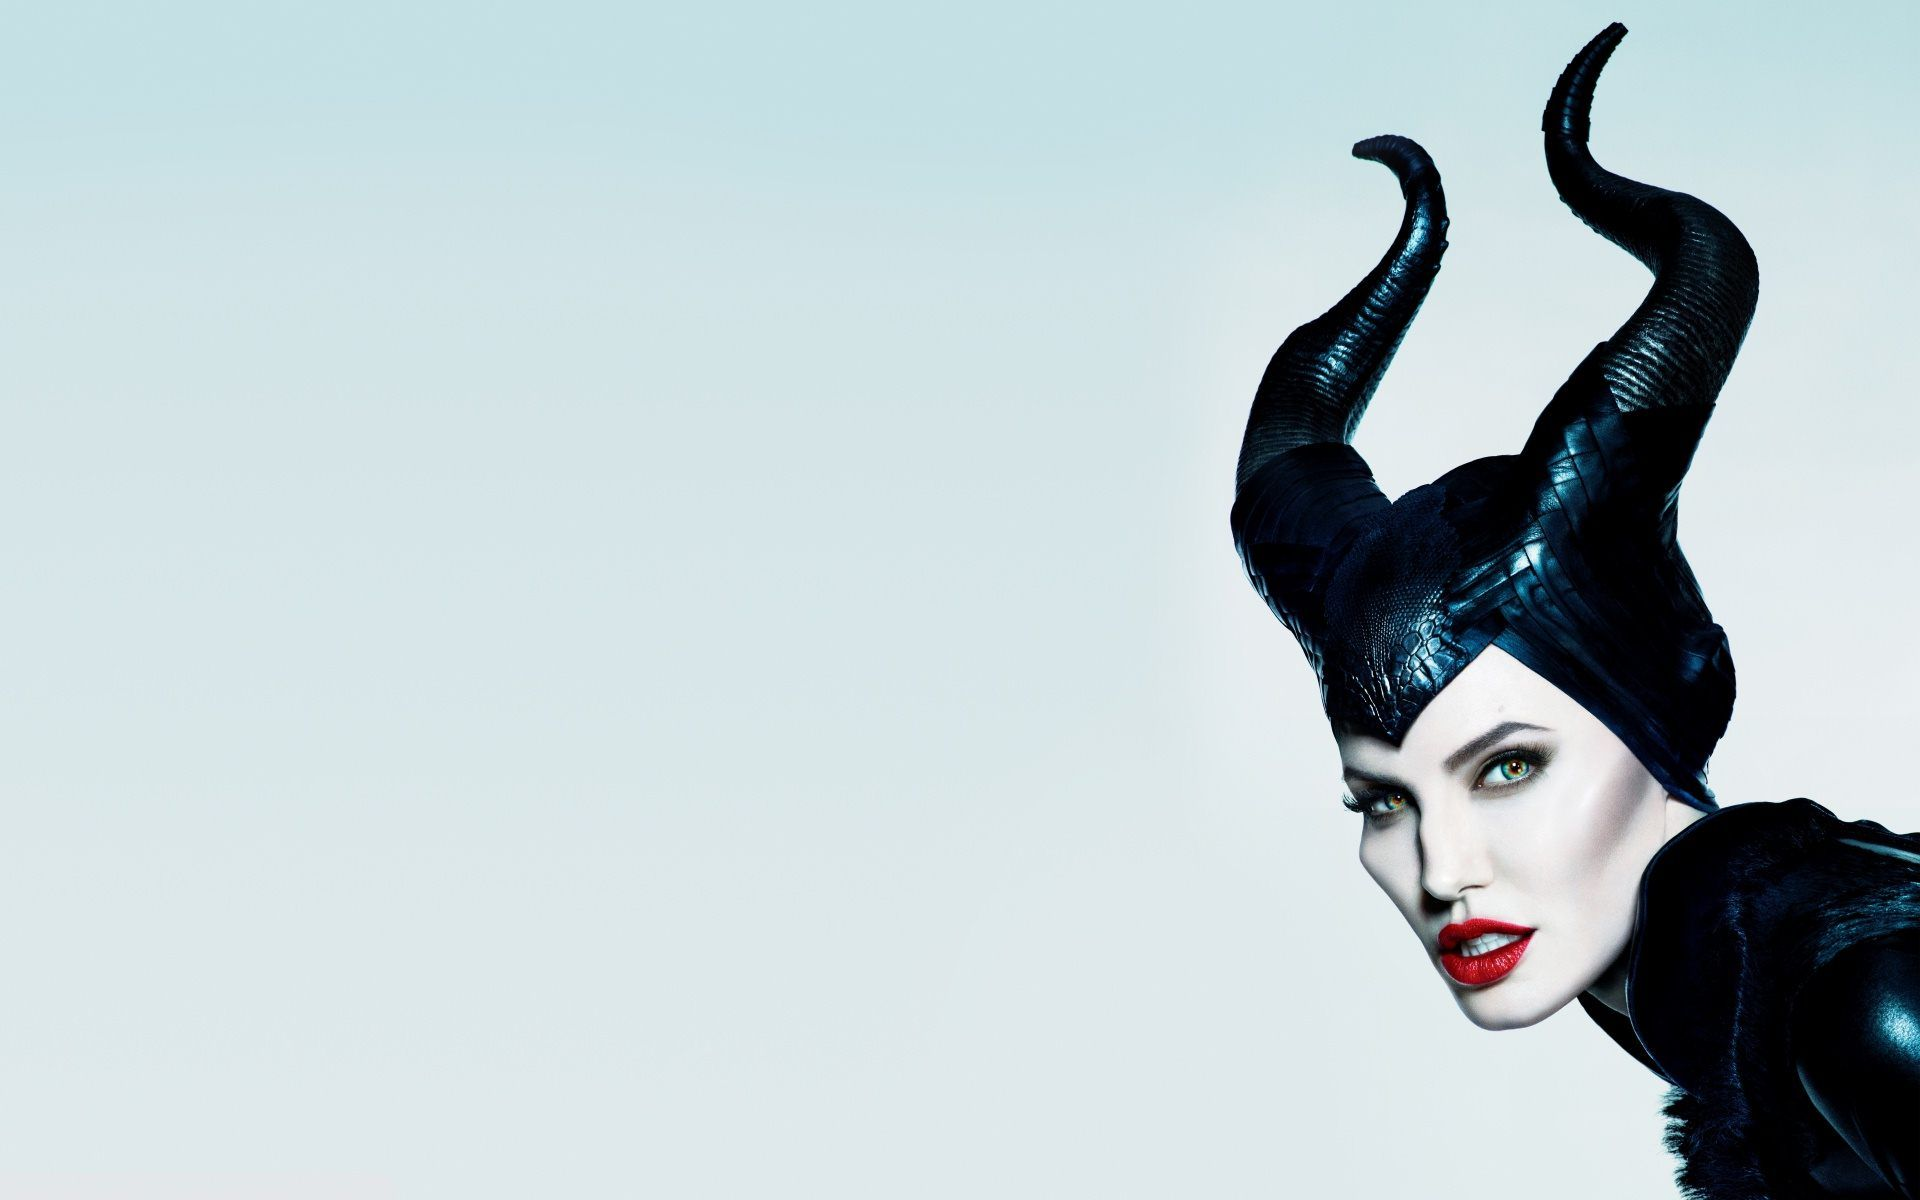 Maleficent Movie 2014 Hd Ipad Iphone Wallpapers: MALEFICENT Wallpaper Wallpaper Free Download 1920×1200